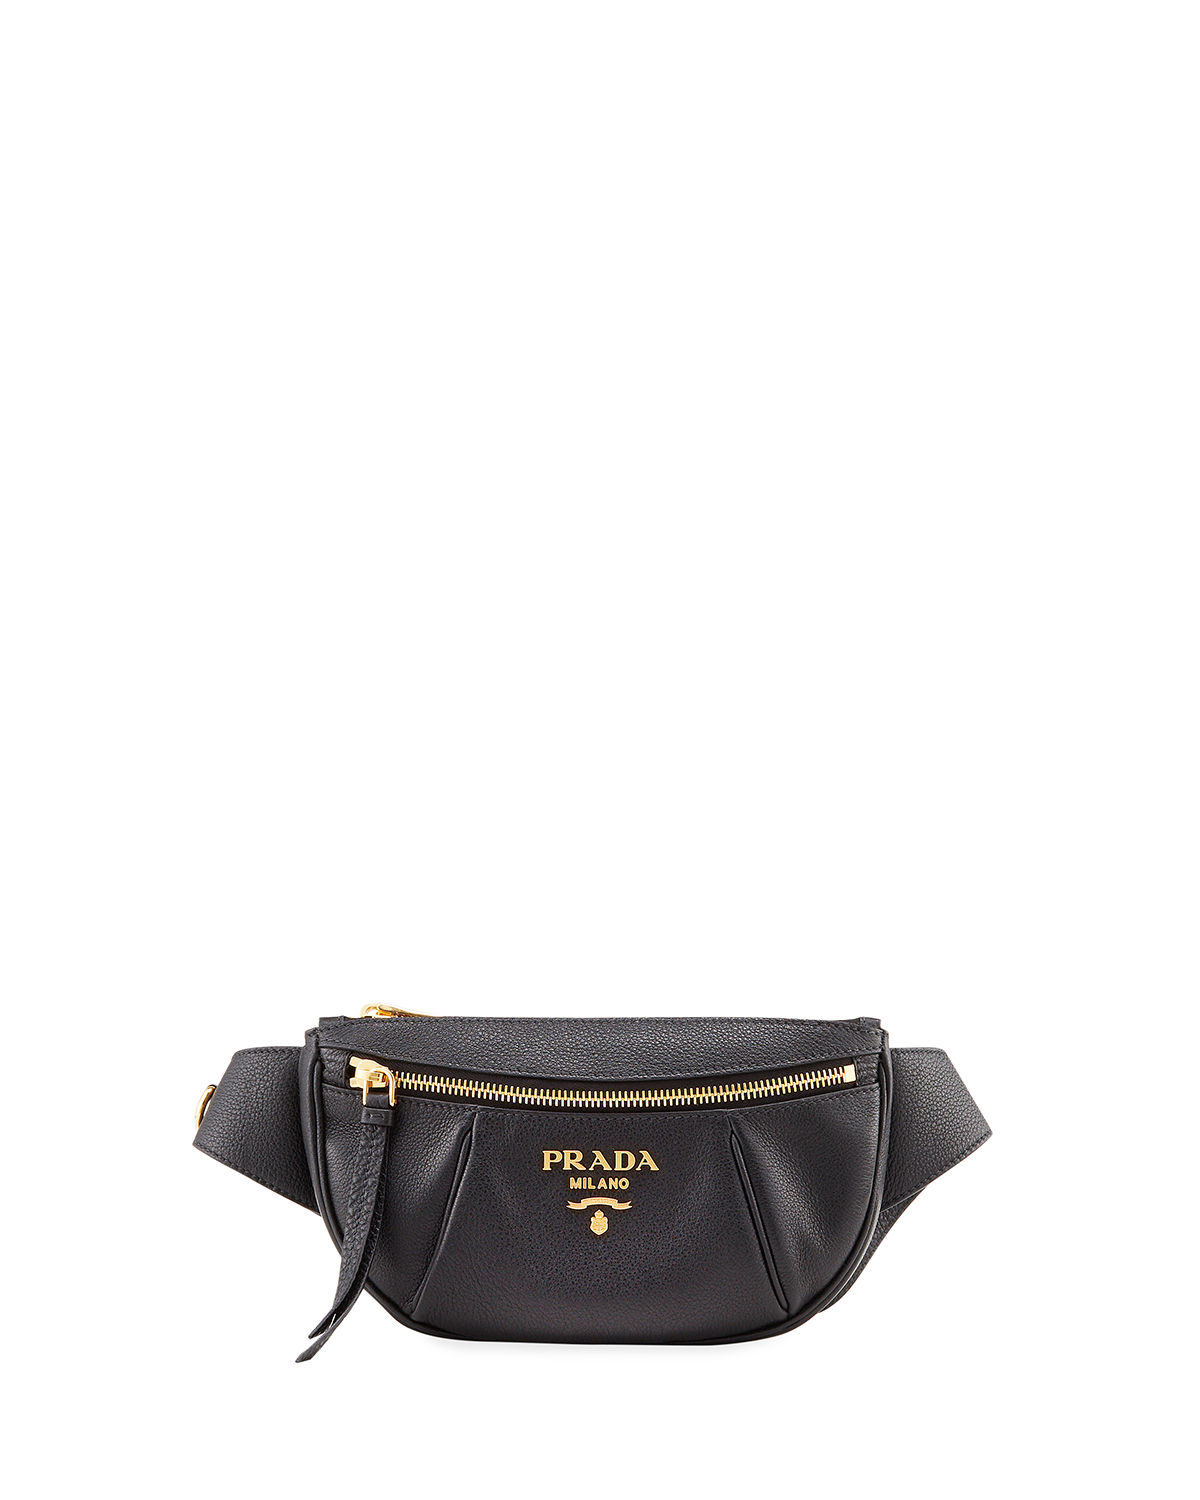 cd46a98c159 Prada Small Daino Leather Belt Bag